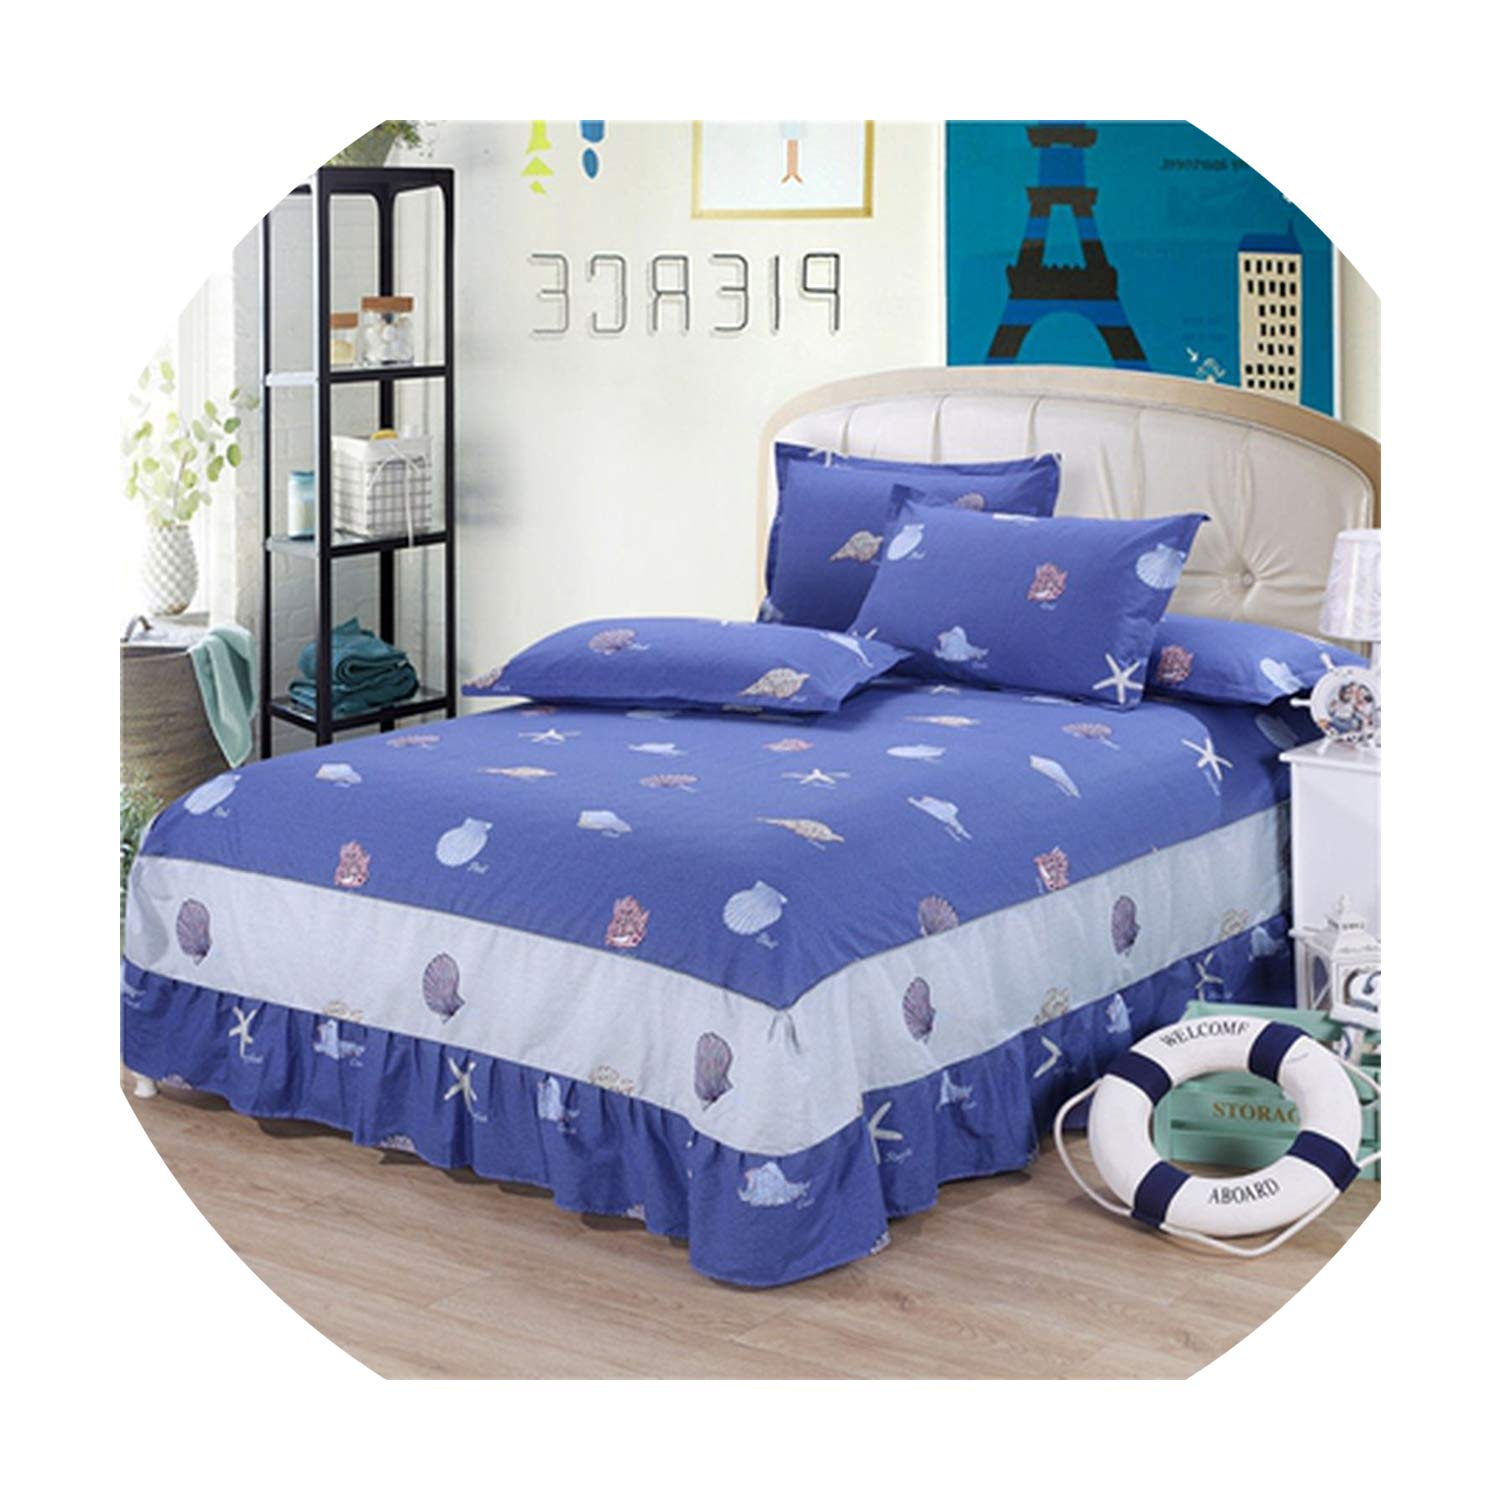 Get-in Cartoon Cotton Kids Bed Skirt Ruffled Princess Bedsheet Bedspreads Thick Fitted Sheet Children Twin Full Queen King Size Covers,Fitted Sheet6,Sheet 200X220Cm